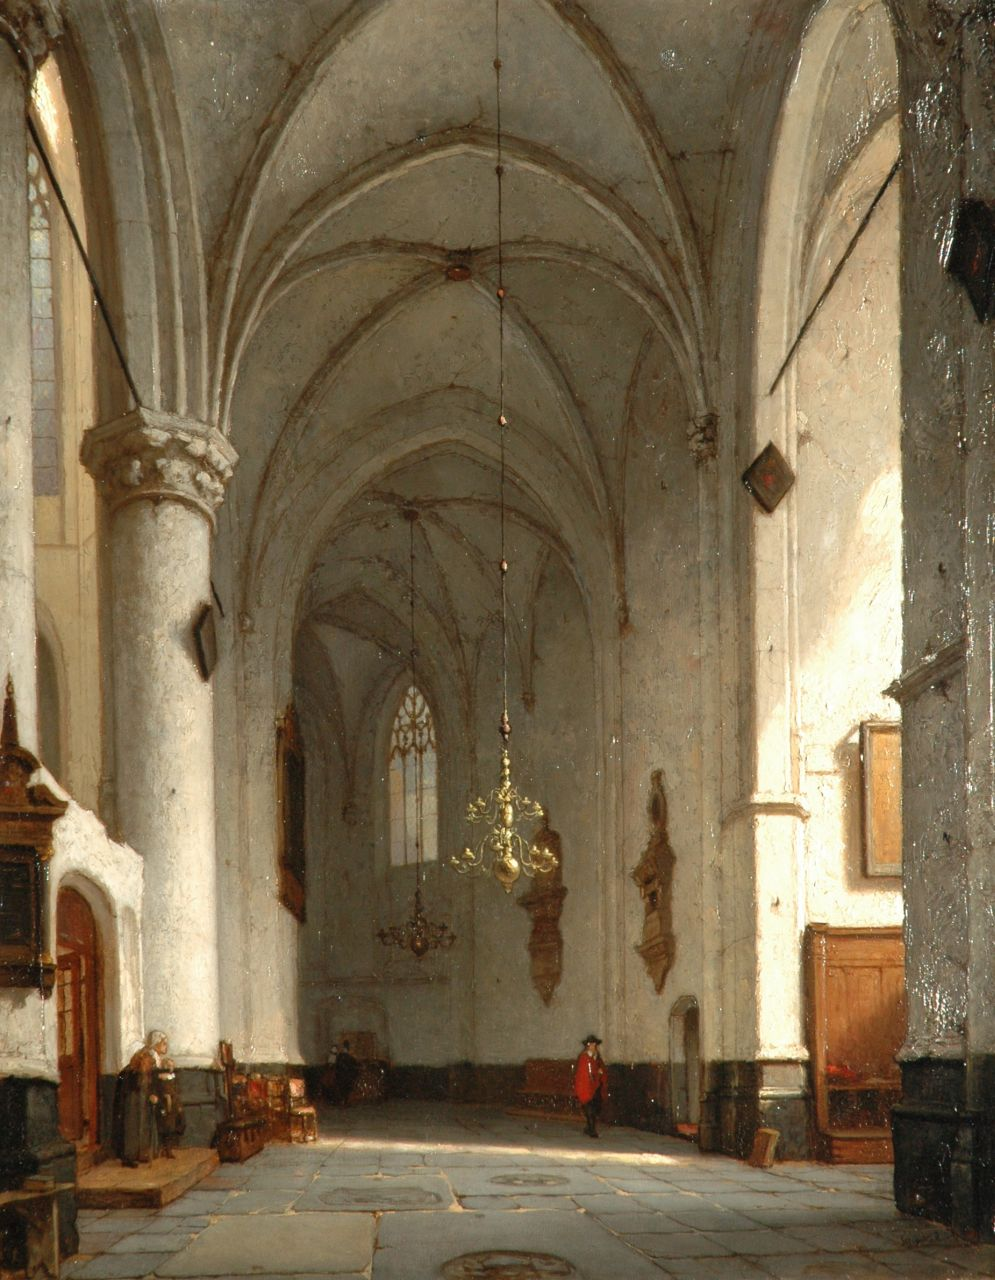 Schenkel J.J.  | Jan Jacob Schenkel, A sunlit church interior, oil on panel 57.3 x 44.5 cm, signed l.r.